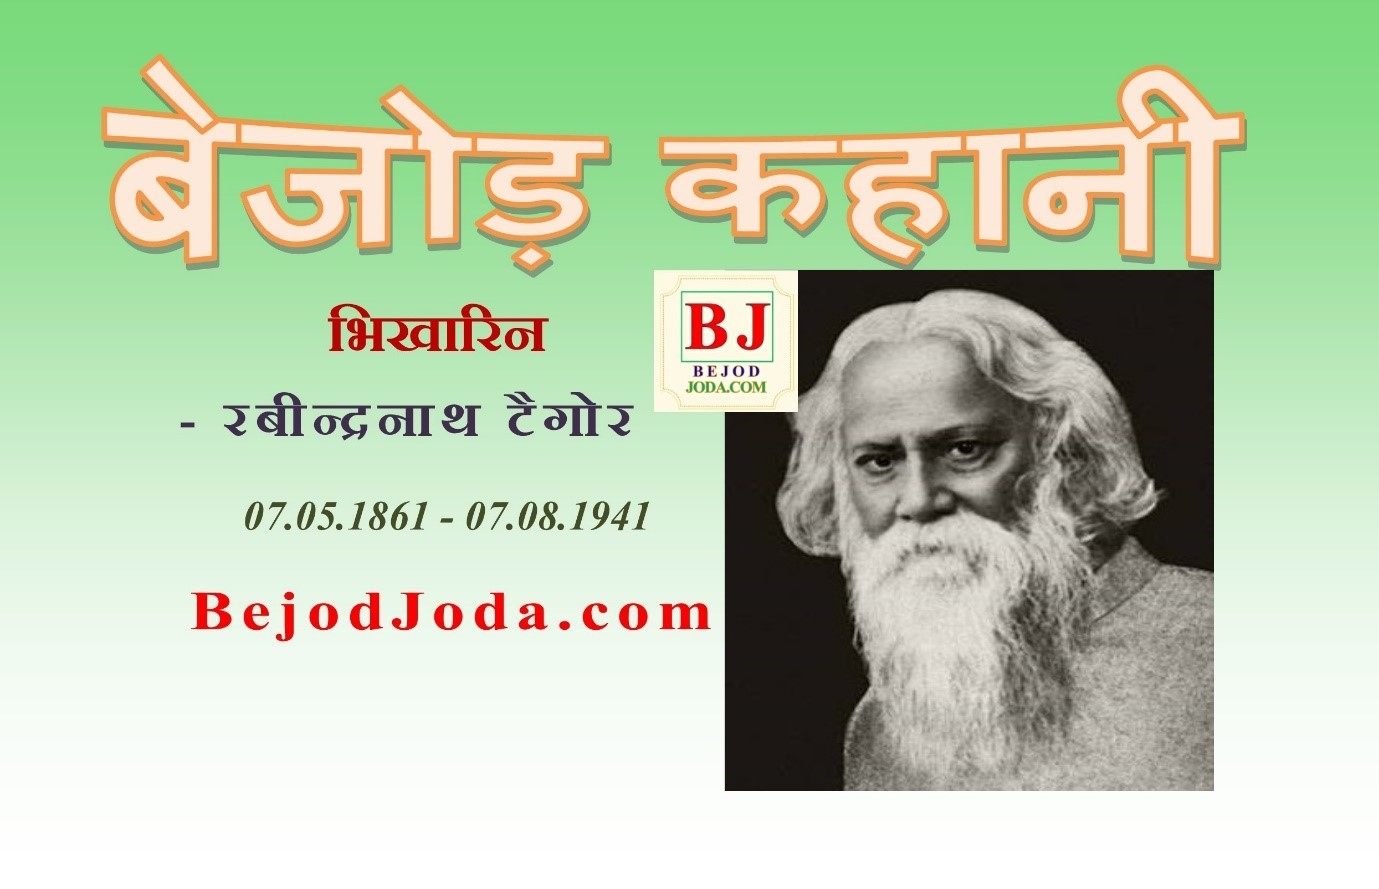 Banner for story Bhikharin written by Rabindranath Tagore